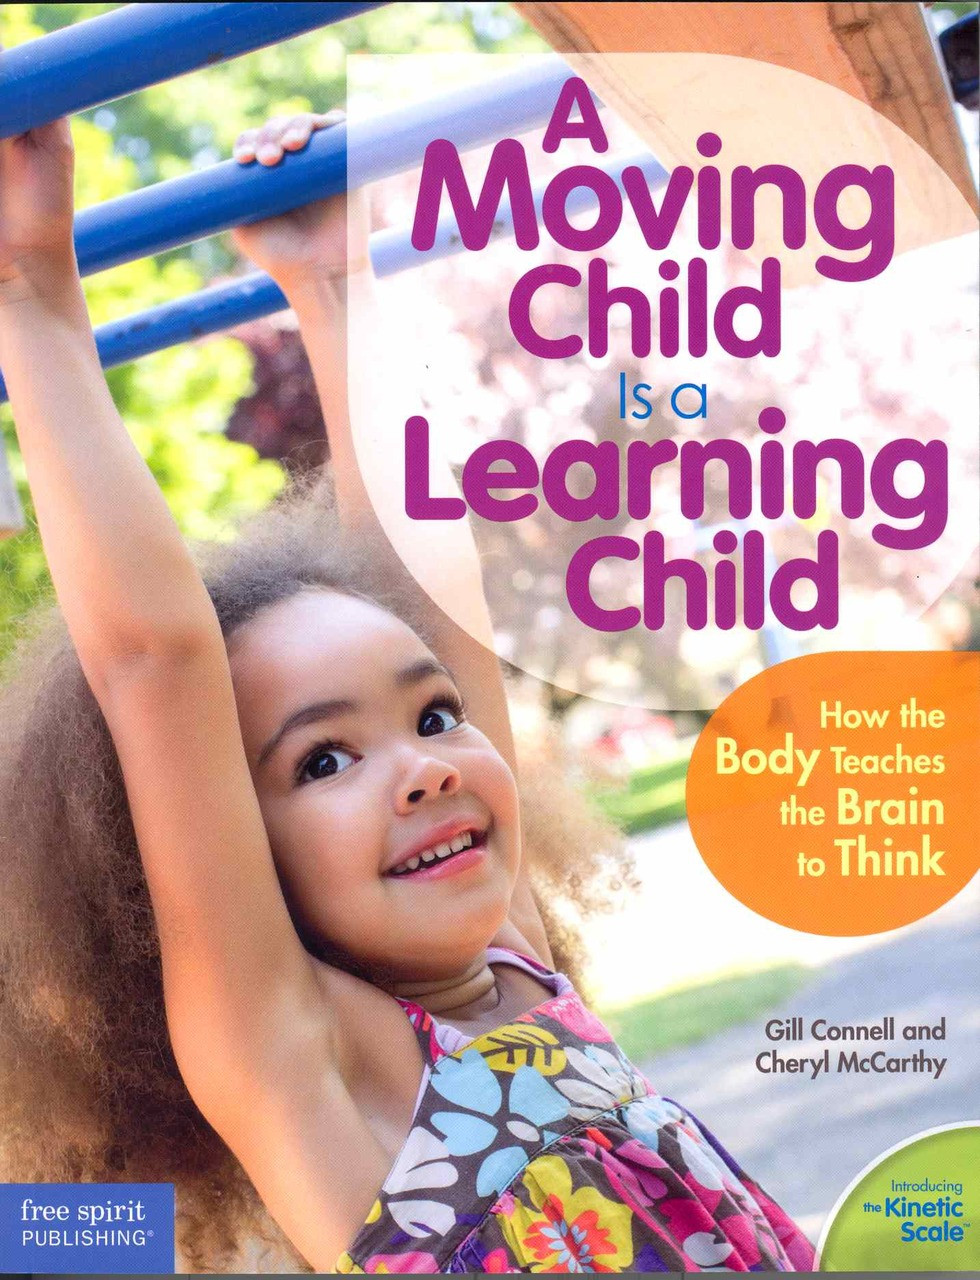 A Moving Child is a Learning Child - How the body teaches the brain to think.